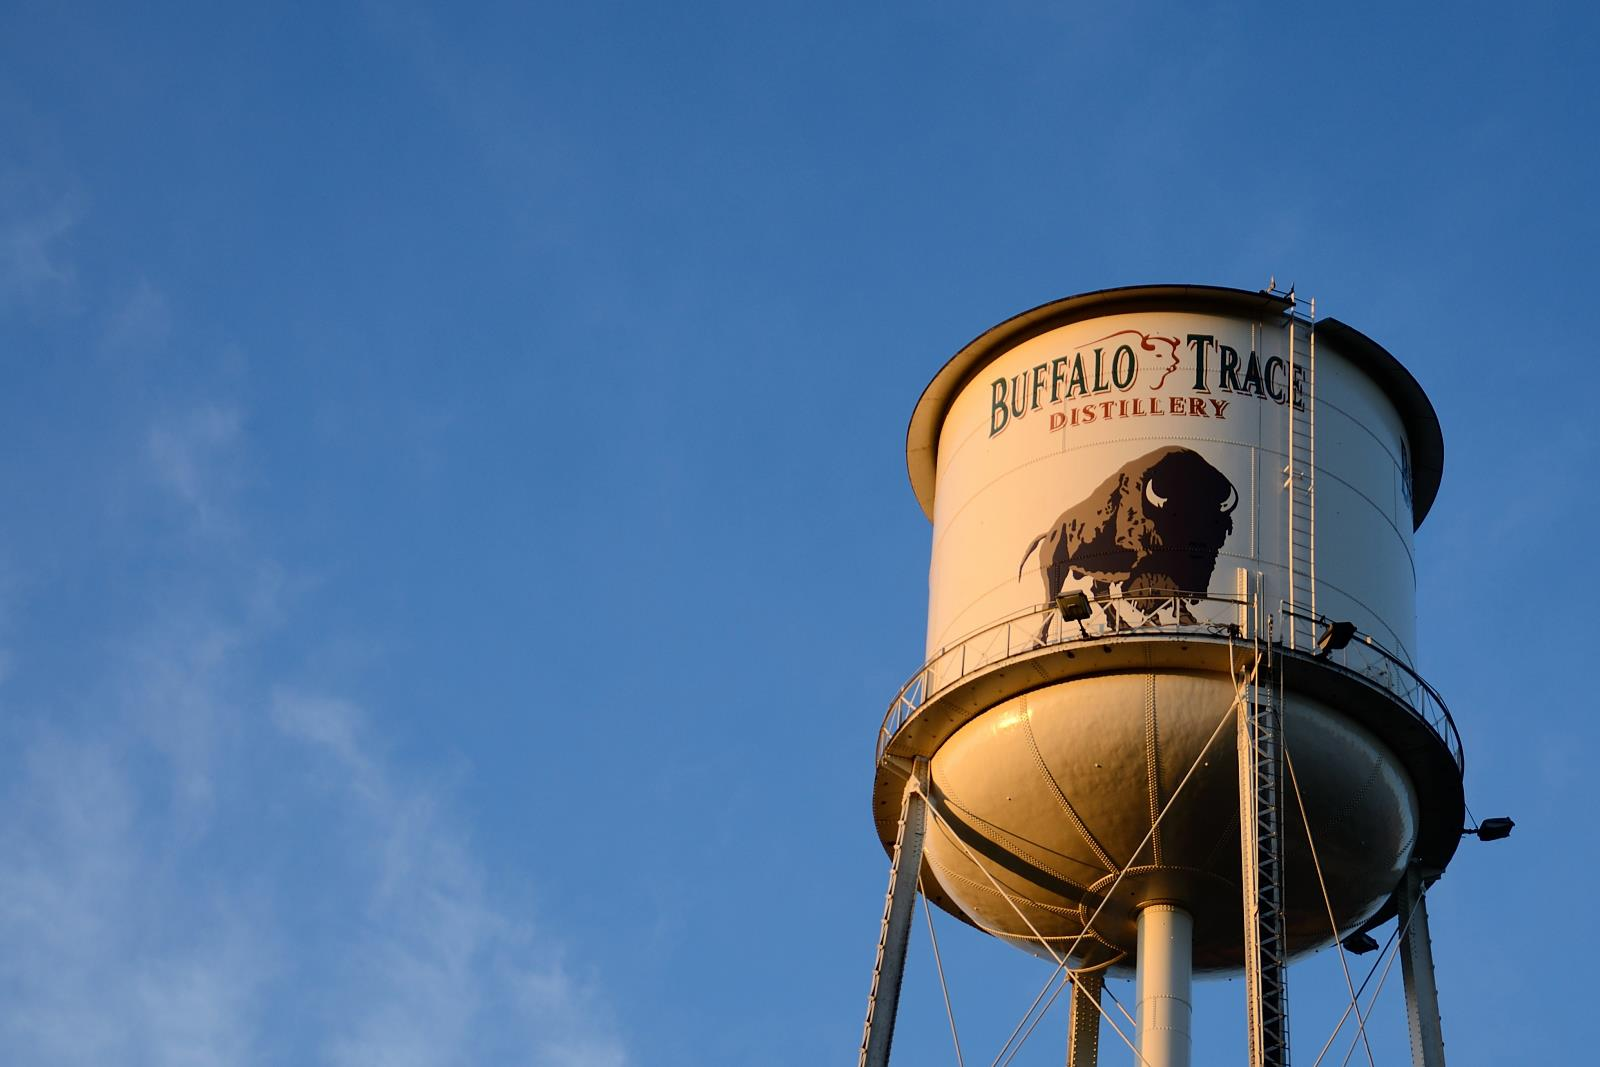 The Buffalo Trace Tower. Image by Kittugwiki - Own work, CC BY-SA 3.0, https://commons.wikimedia.org/w/index.php?curid=30551193